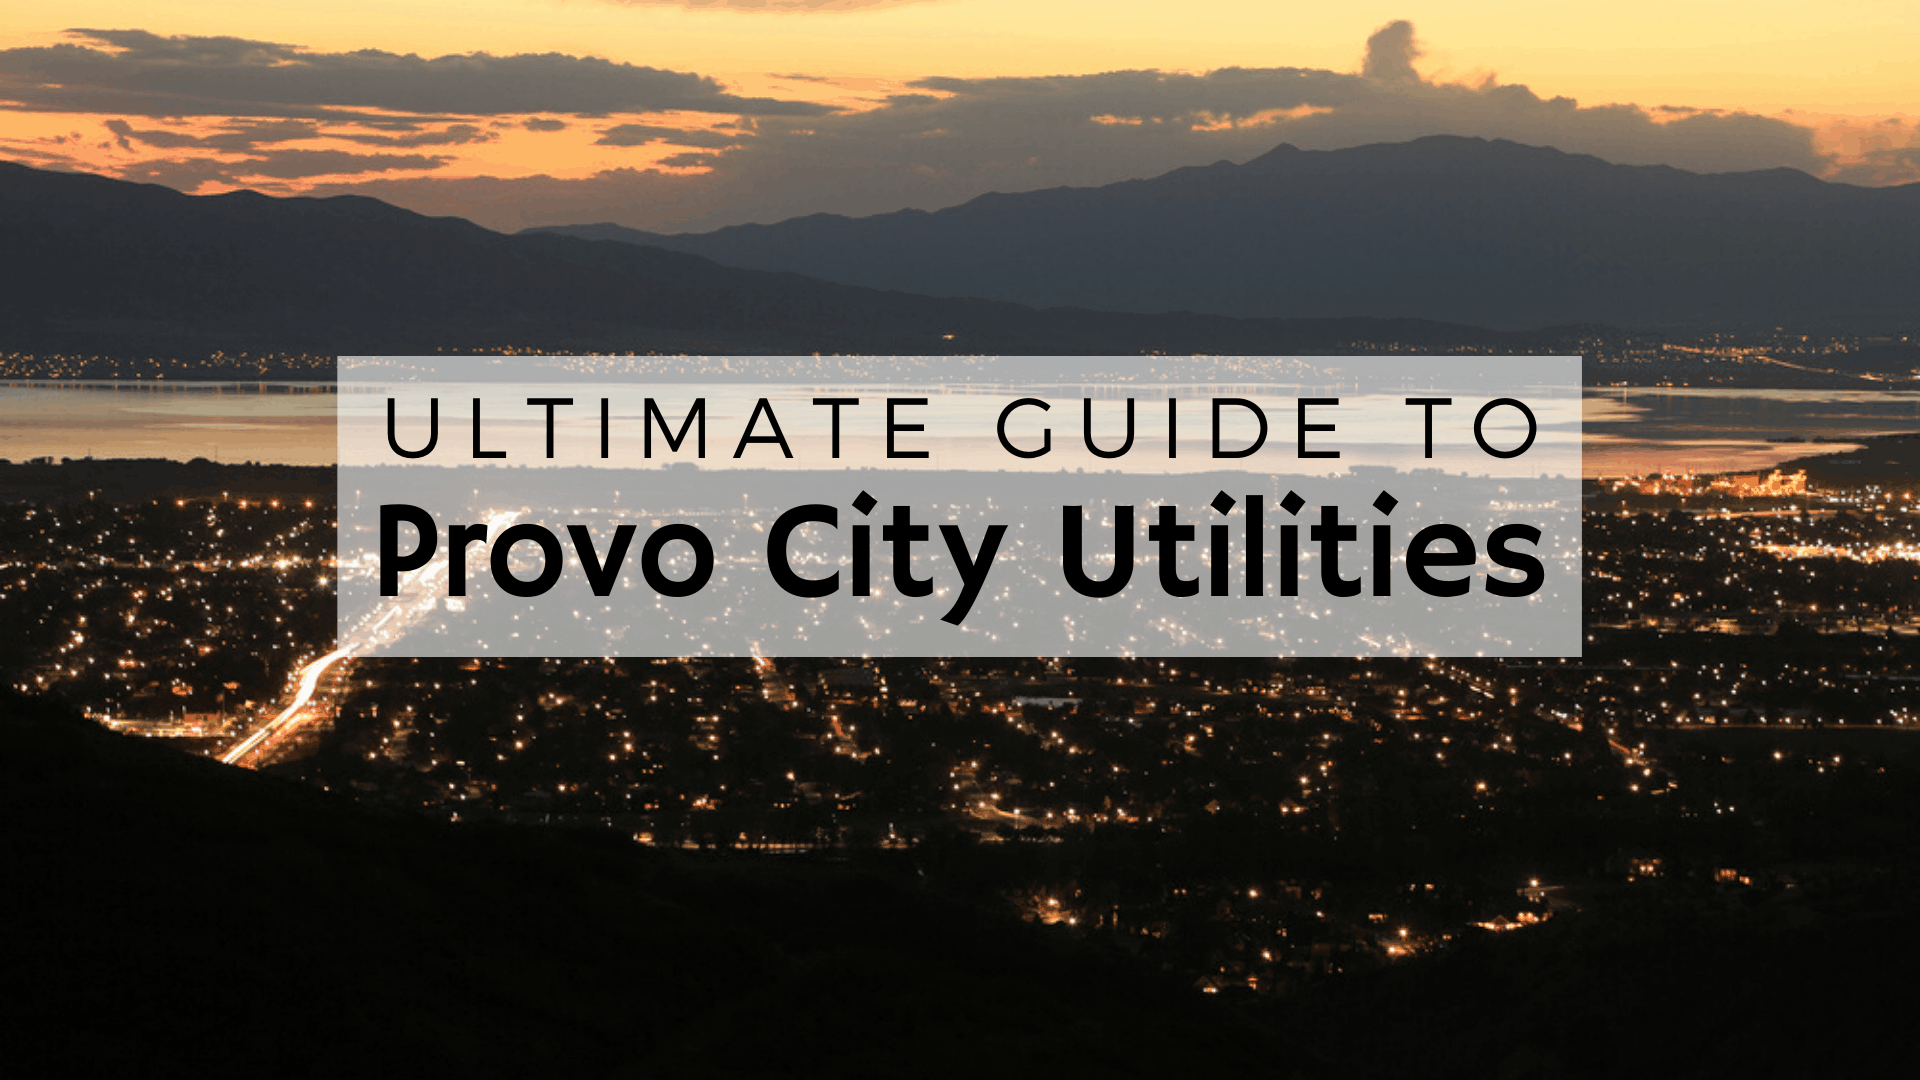 Ultimate Guide to Provo City Utilities